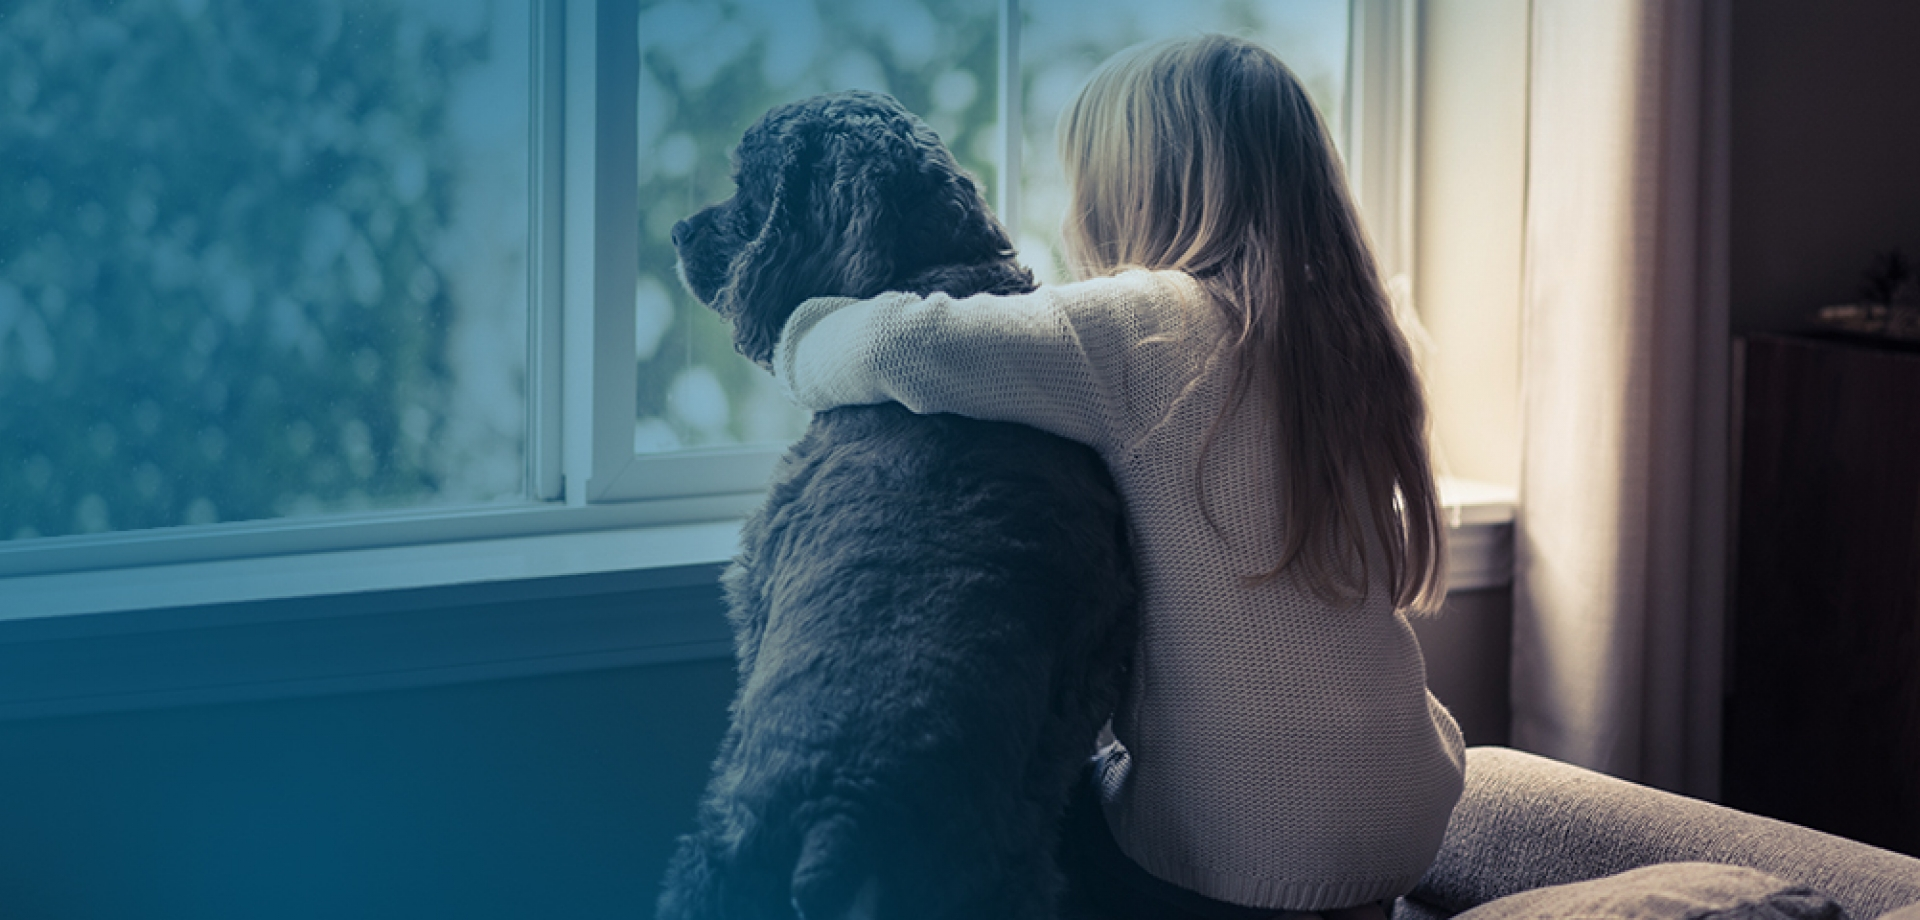 Girl and her dog looking out a window